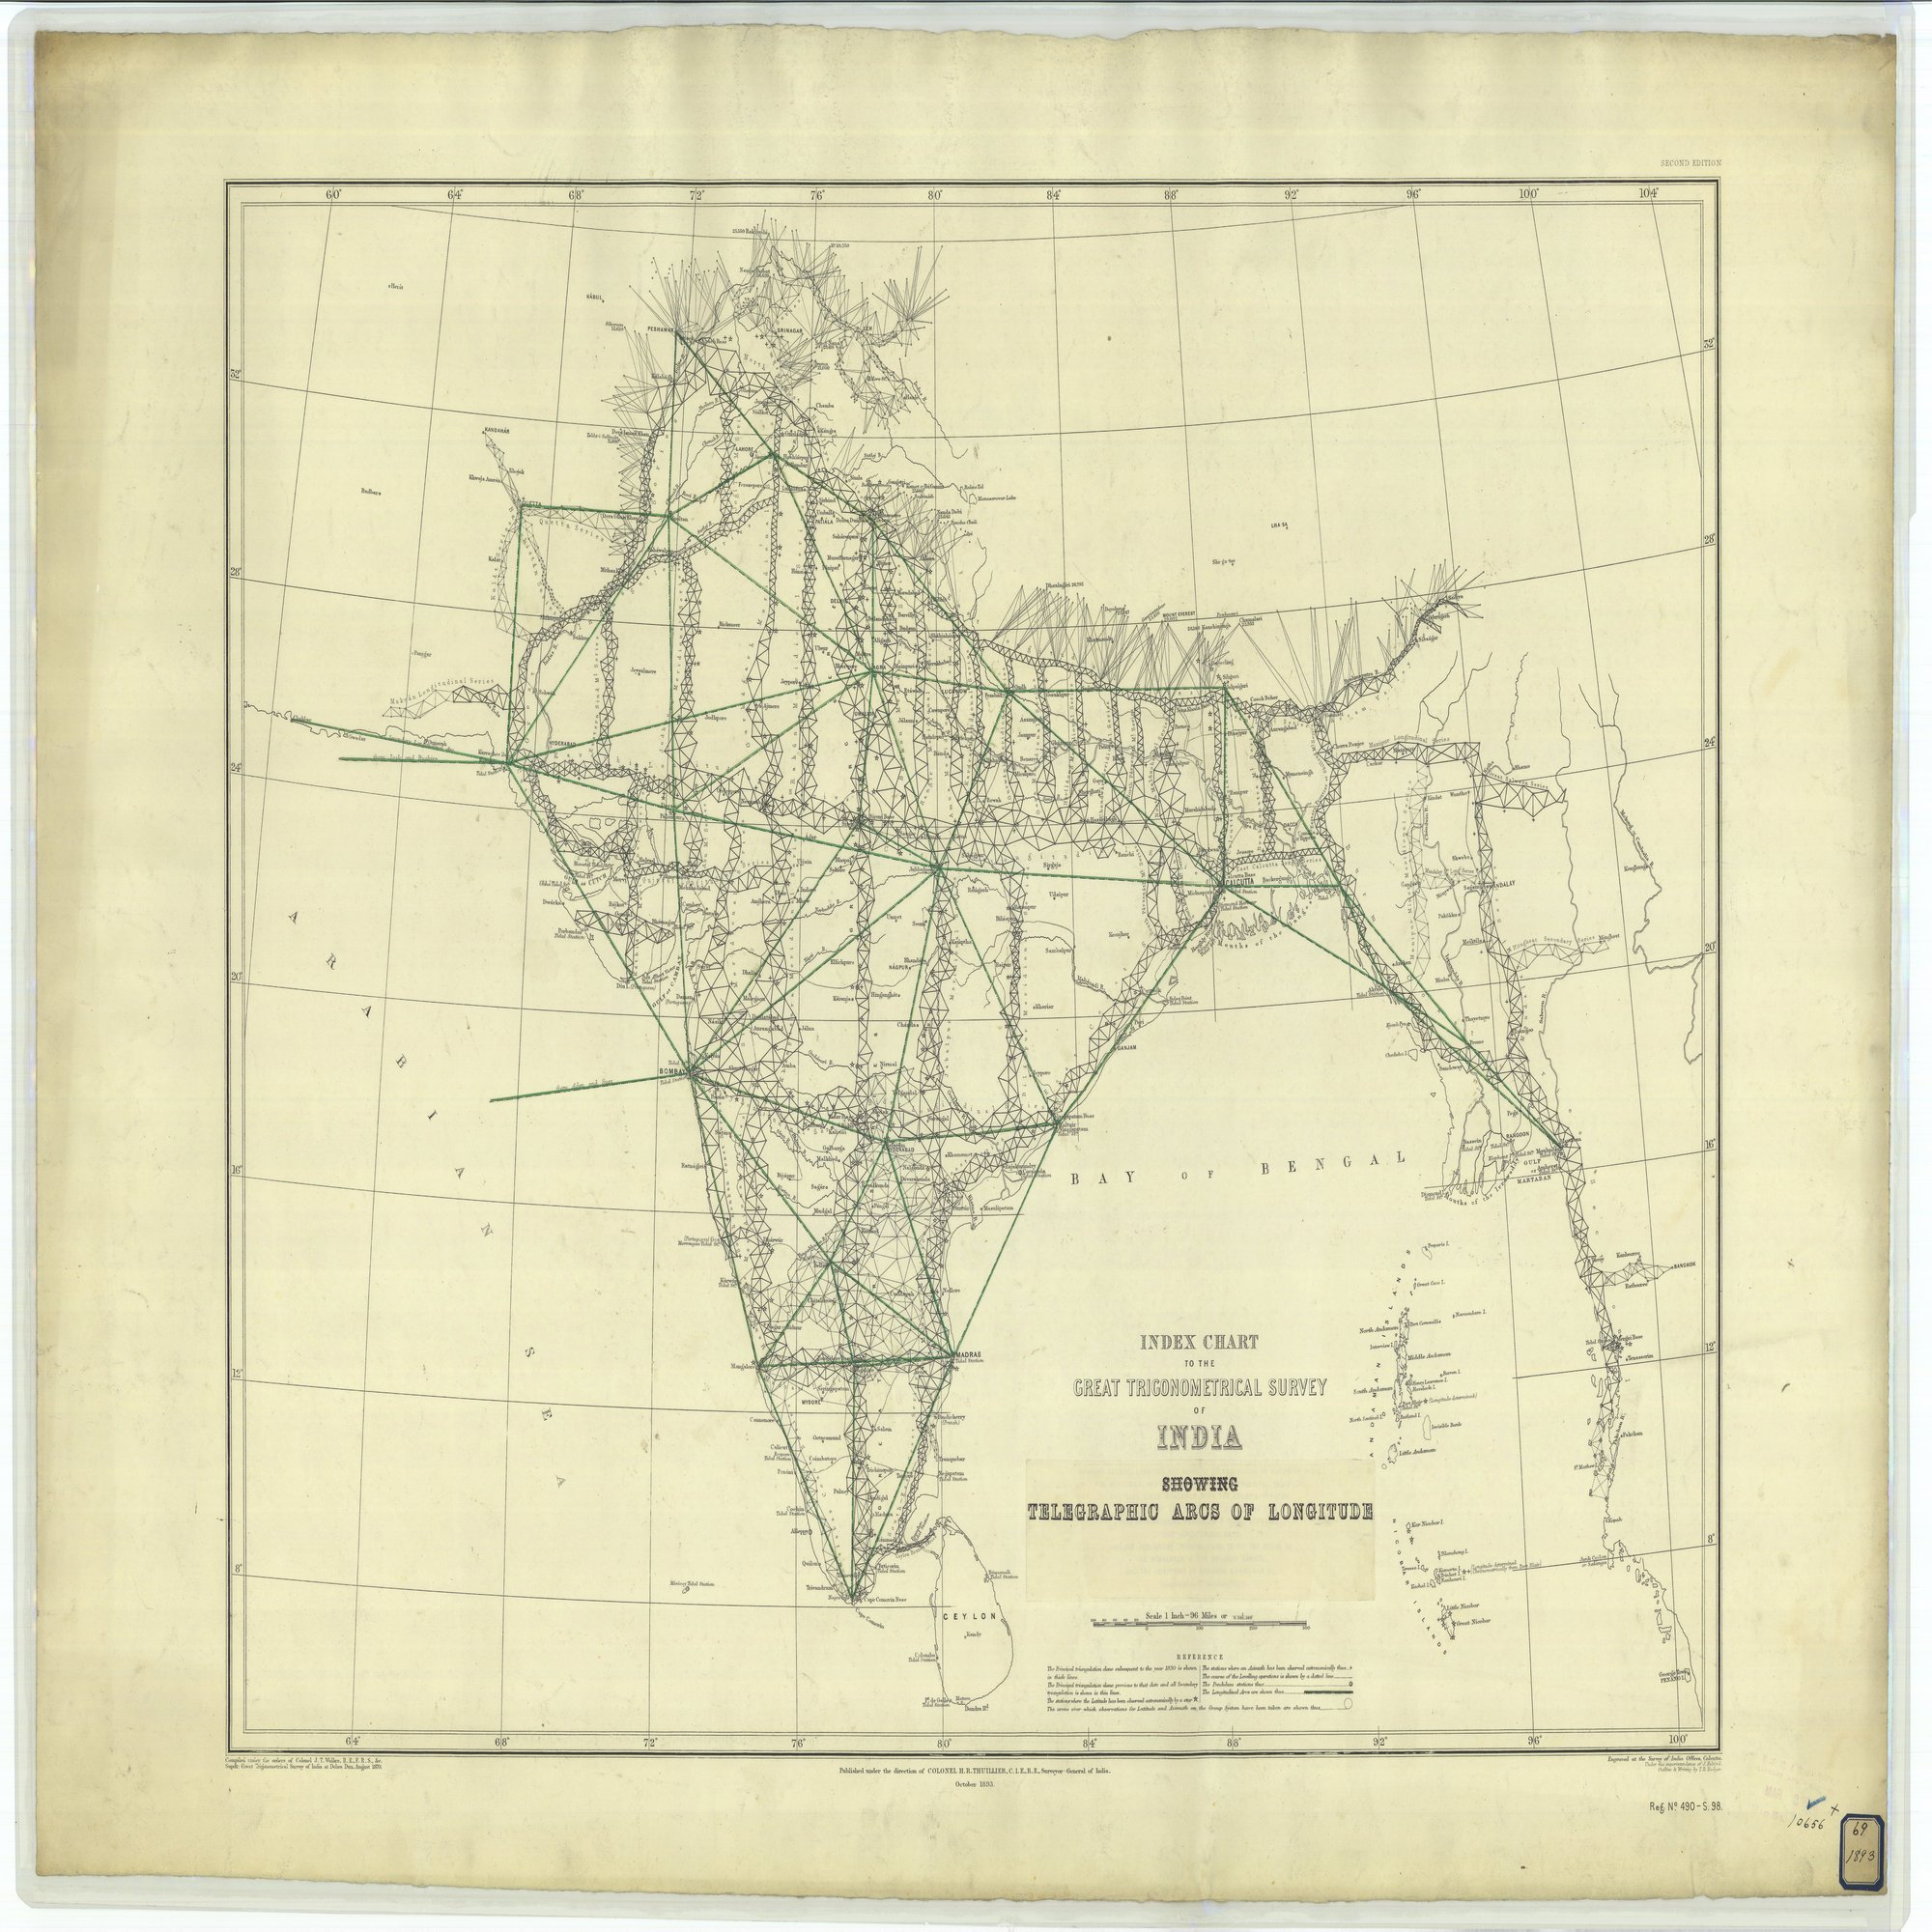 16 x 20 Glossy Nautical Map Printed on Metal Index Chart to the Great Trigonometrical Survey of India Showing Telegraphic Arcs of Longitude 1893 NOAA 25a